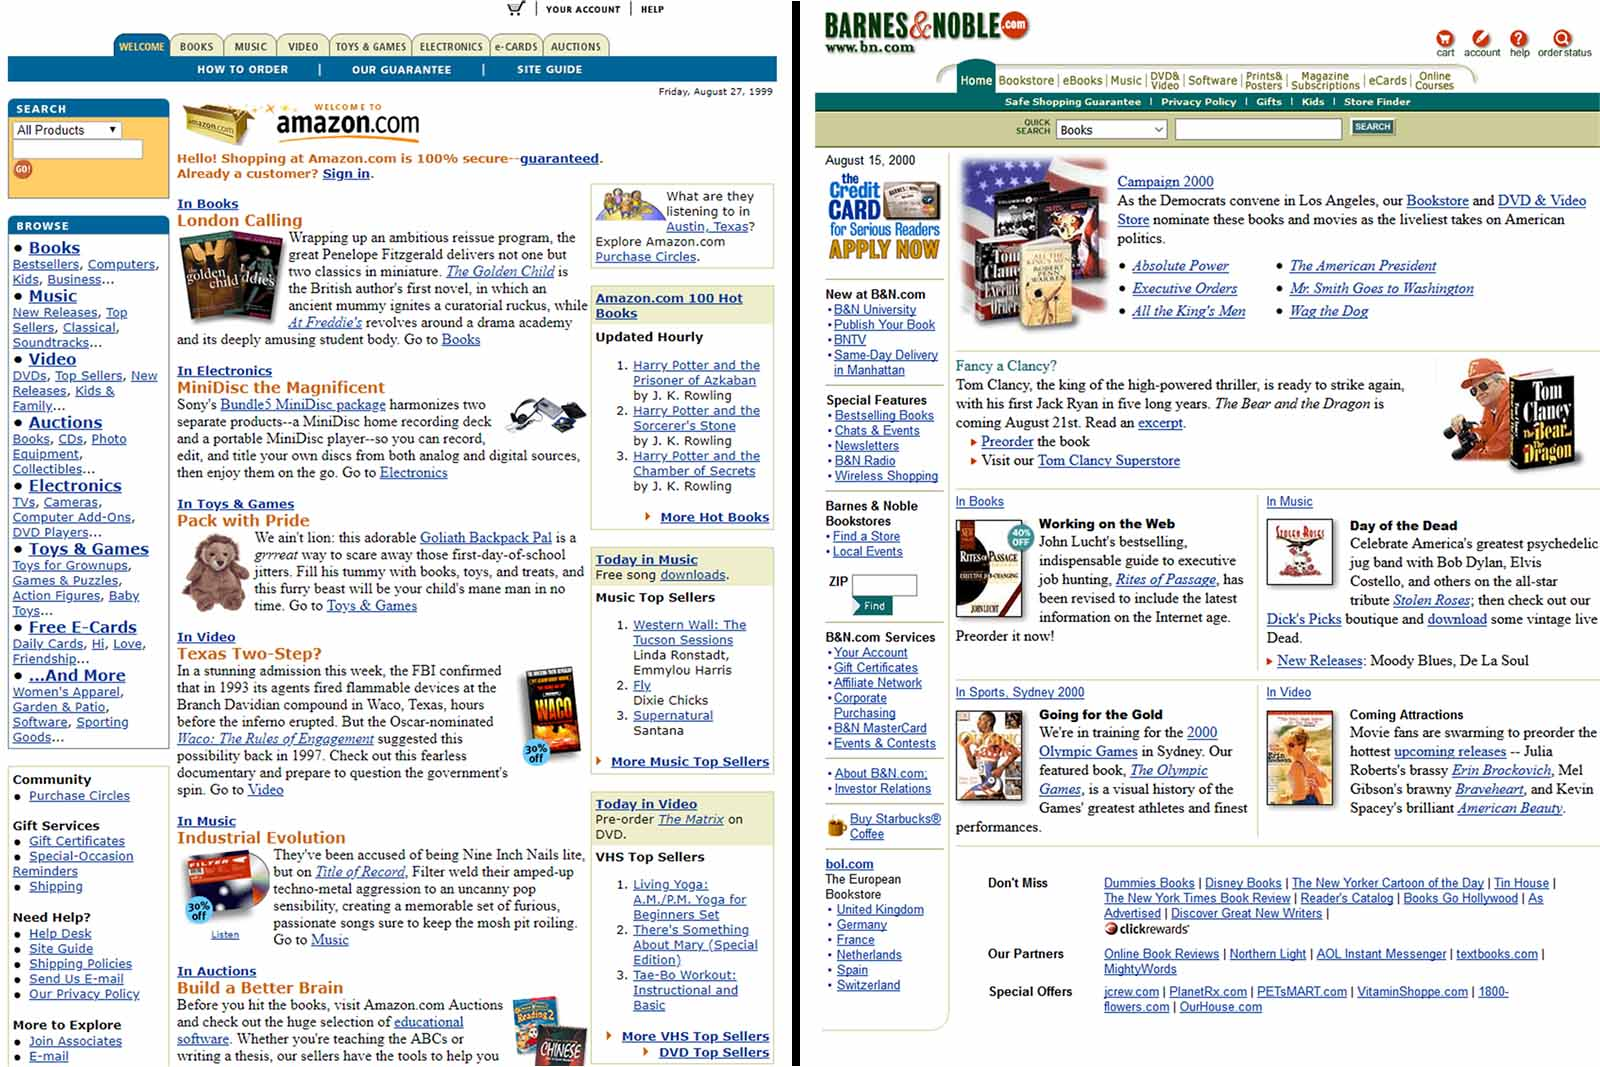 Amazon & Barnes & Noble homepages in 2000